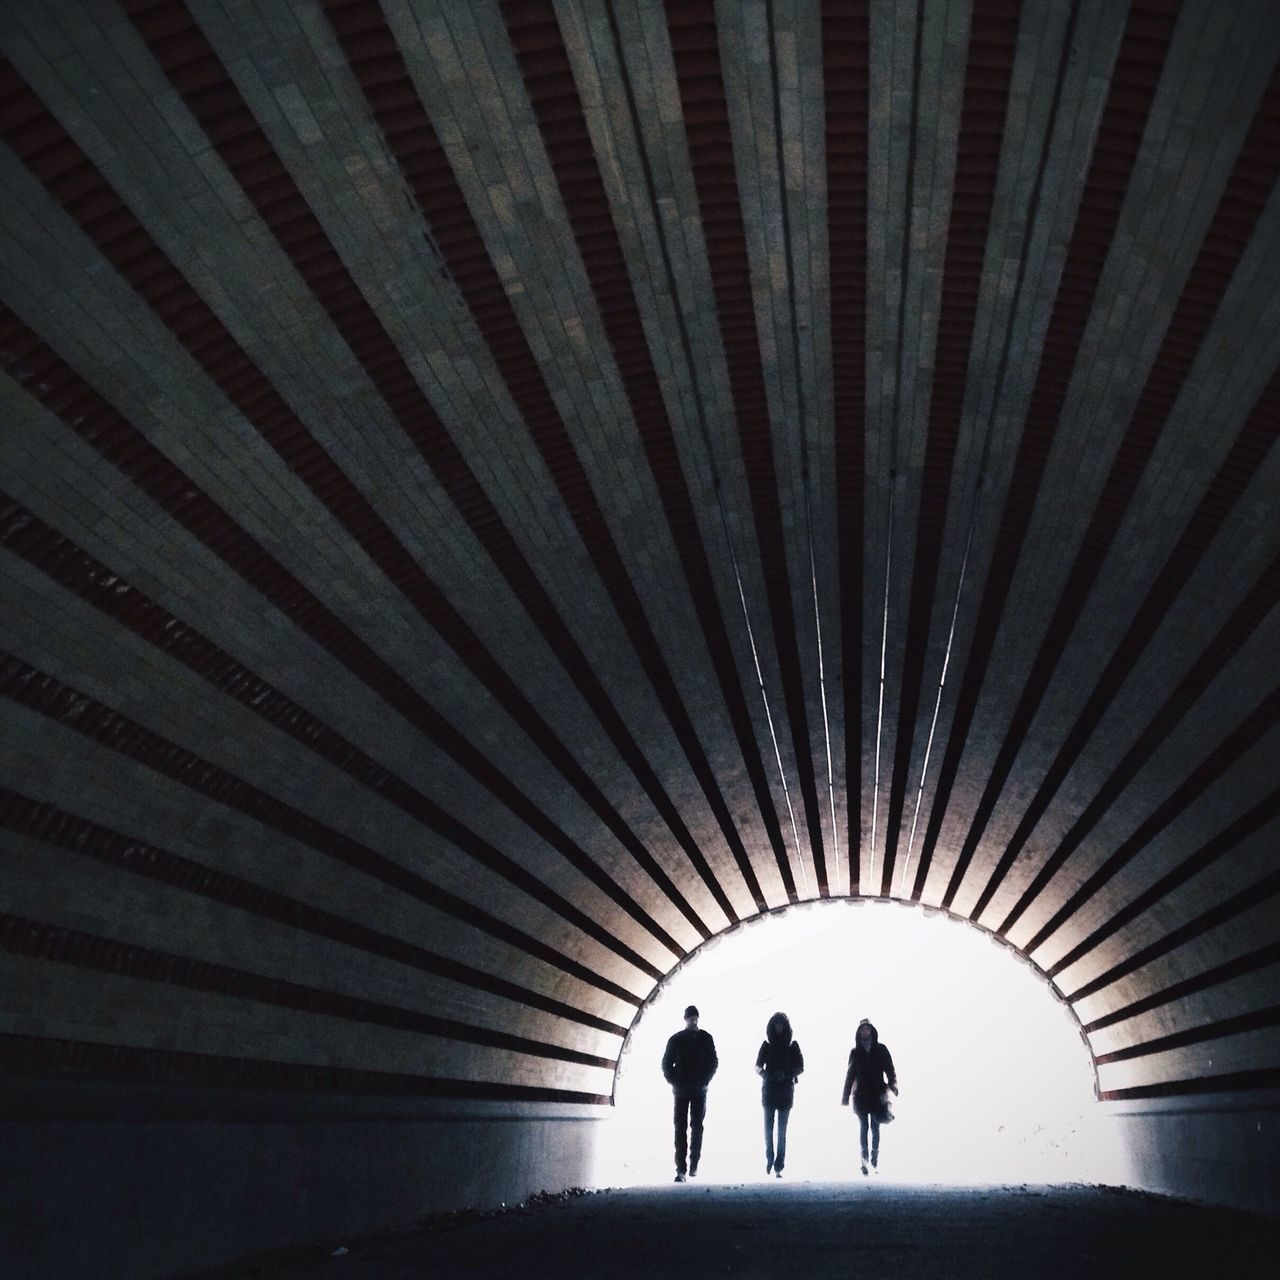 Full Length Of People Walking In Tunnel